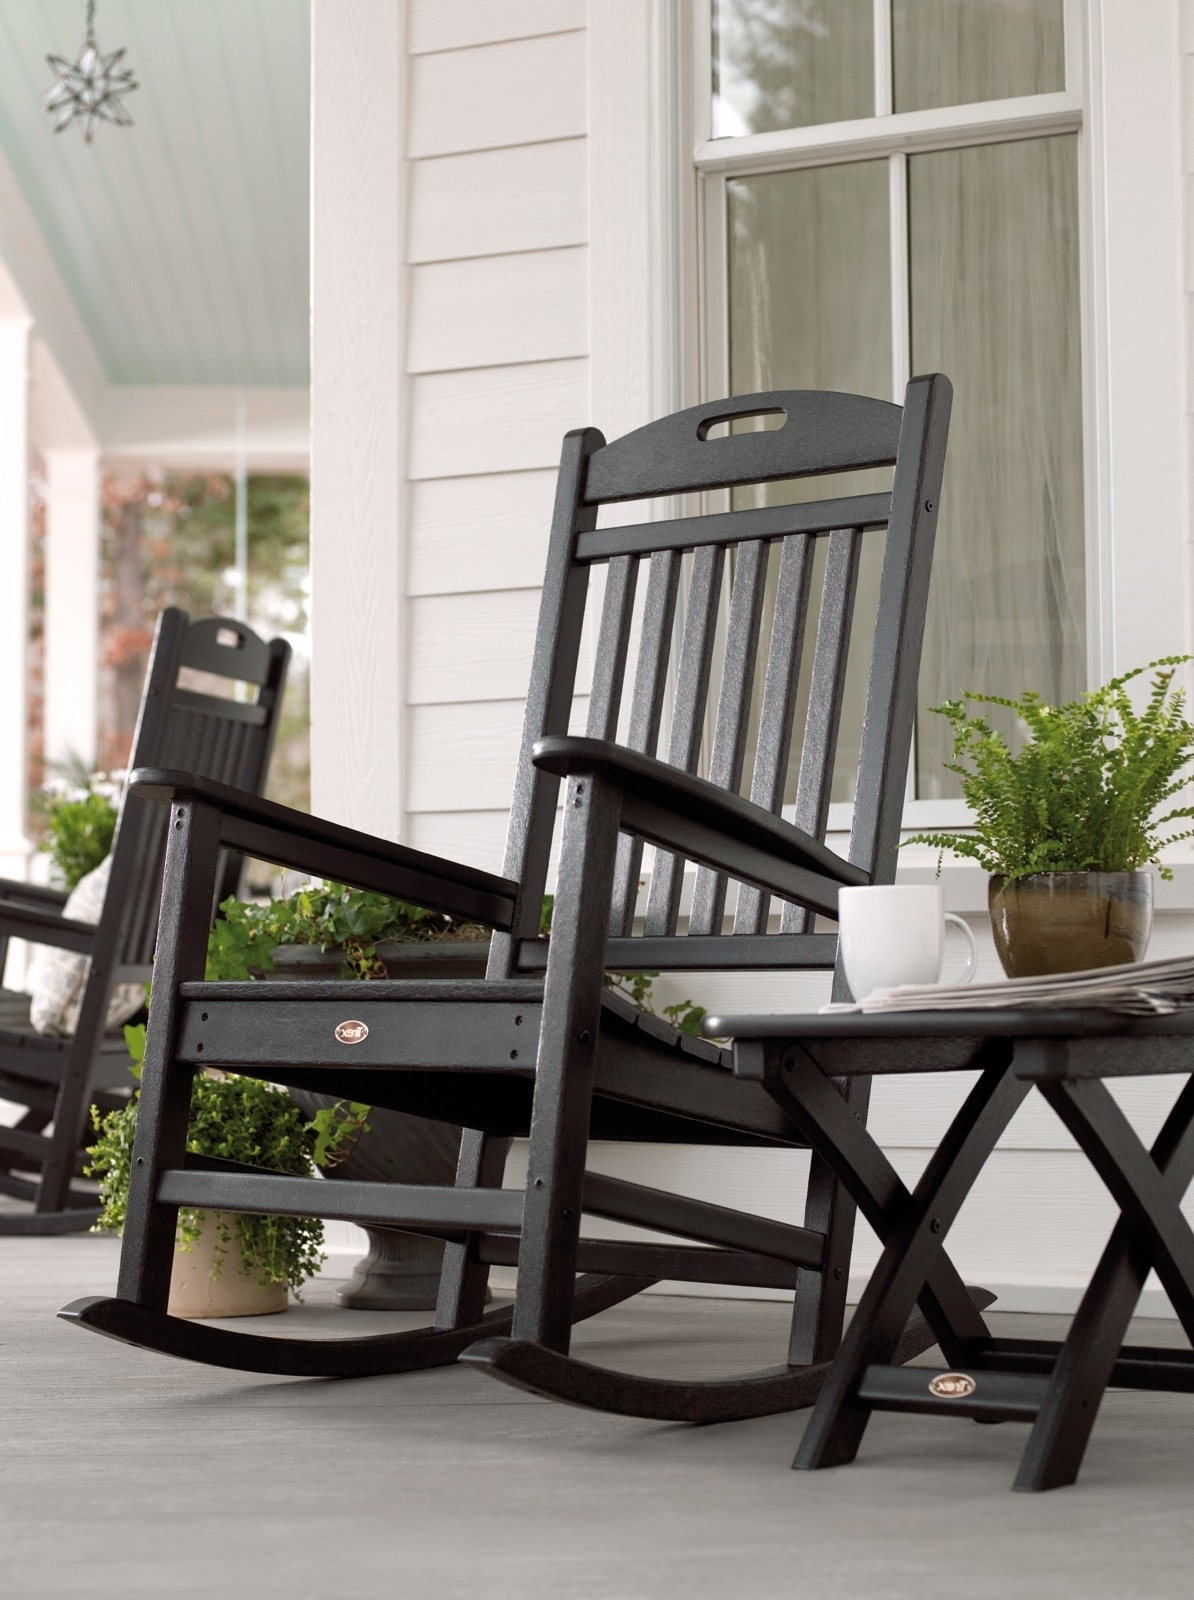 2017 Patio Furniture Rocking Benches Within Yacht Club Rocking Chair (View 7 of 15)